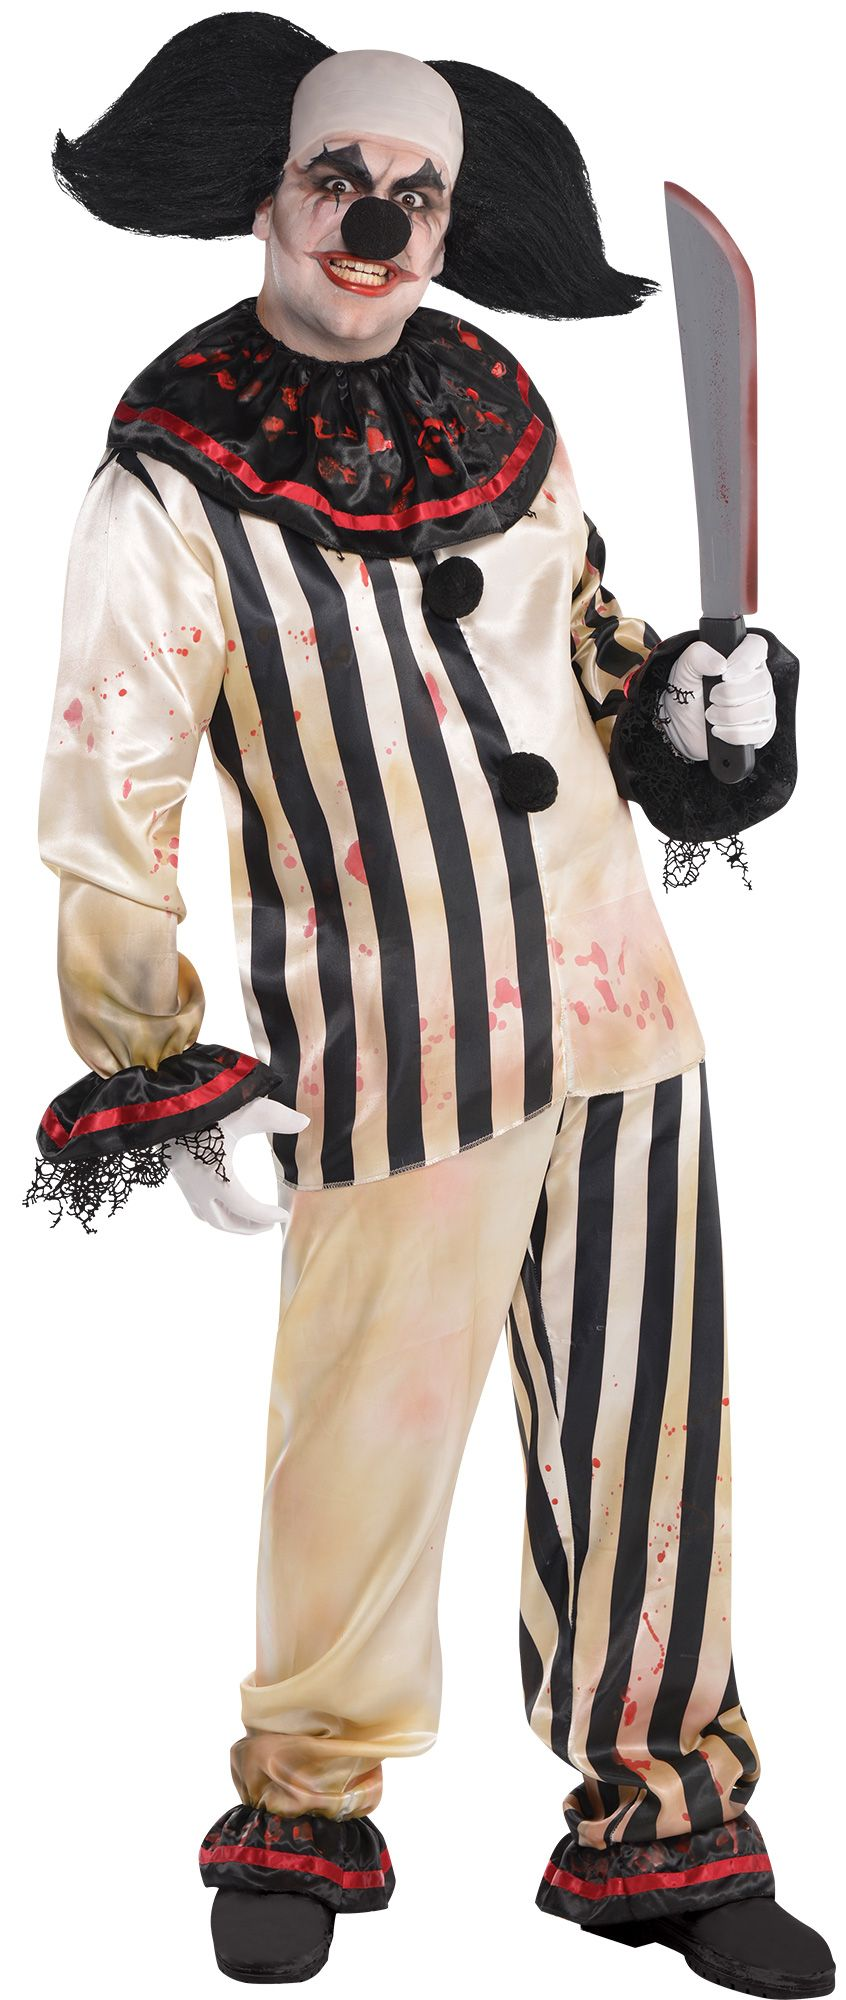 Create Your Own Look - Men's Freak Show Clown #2